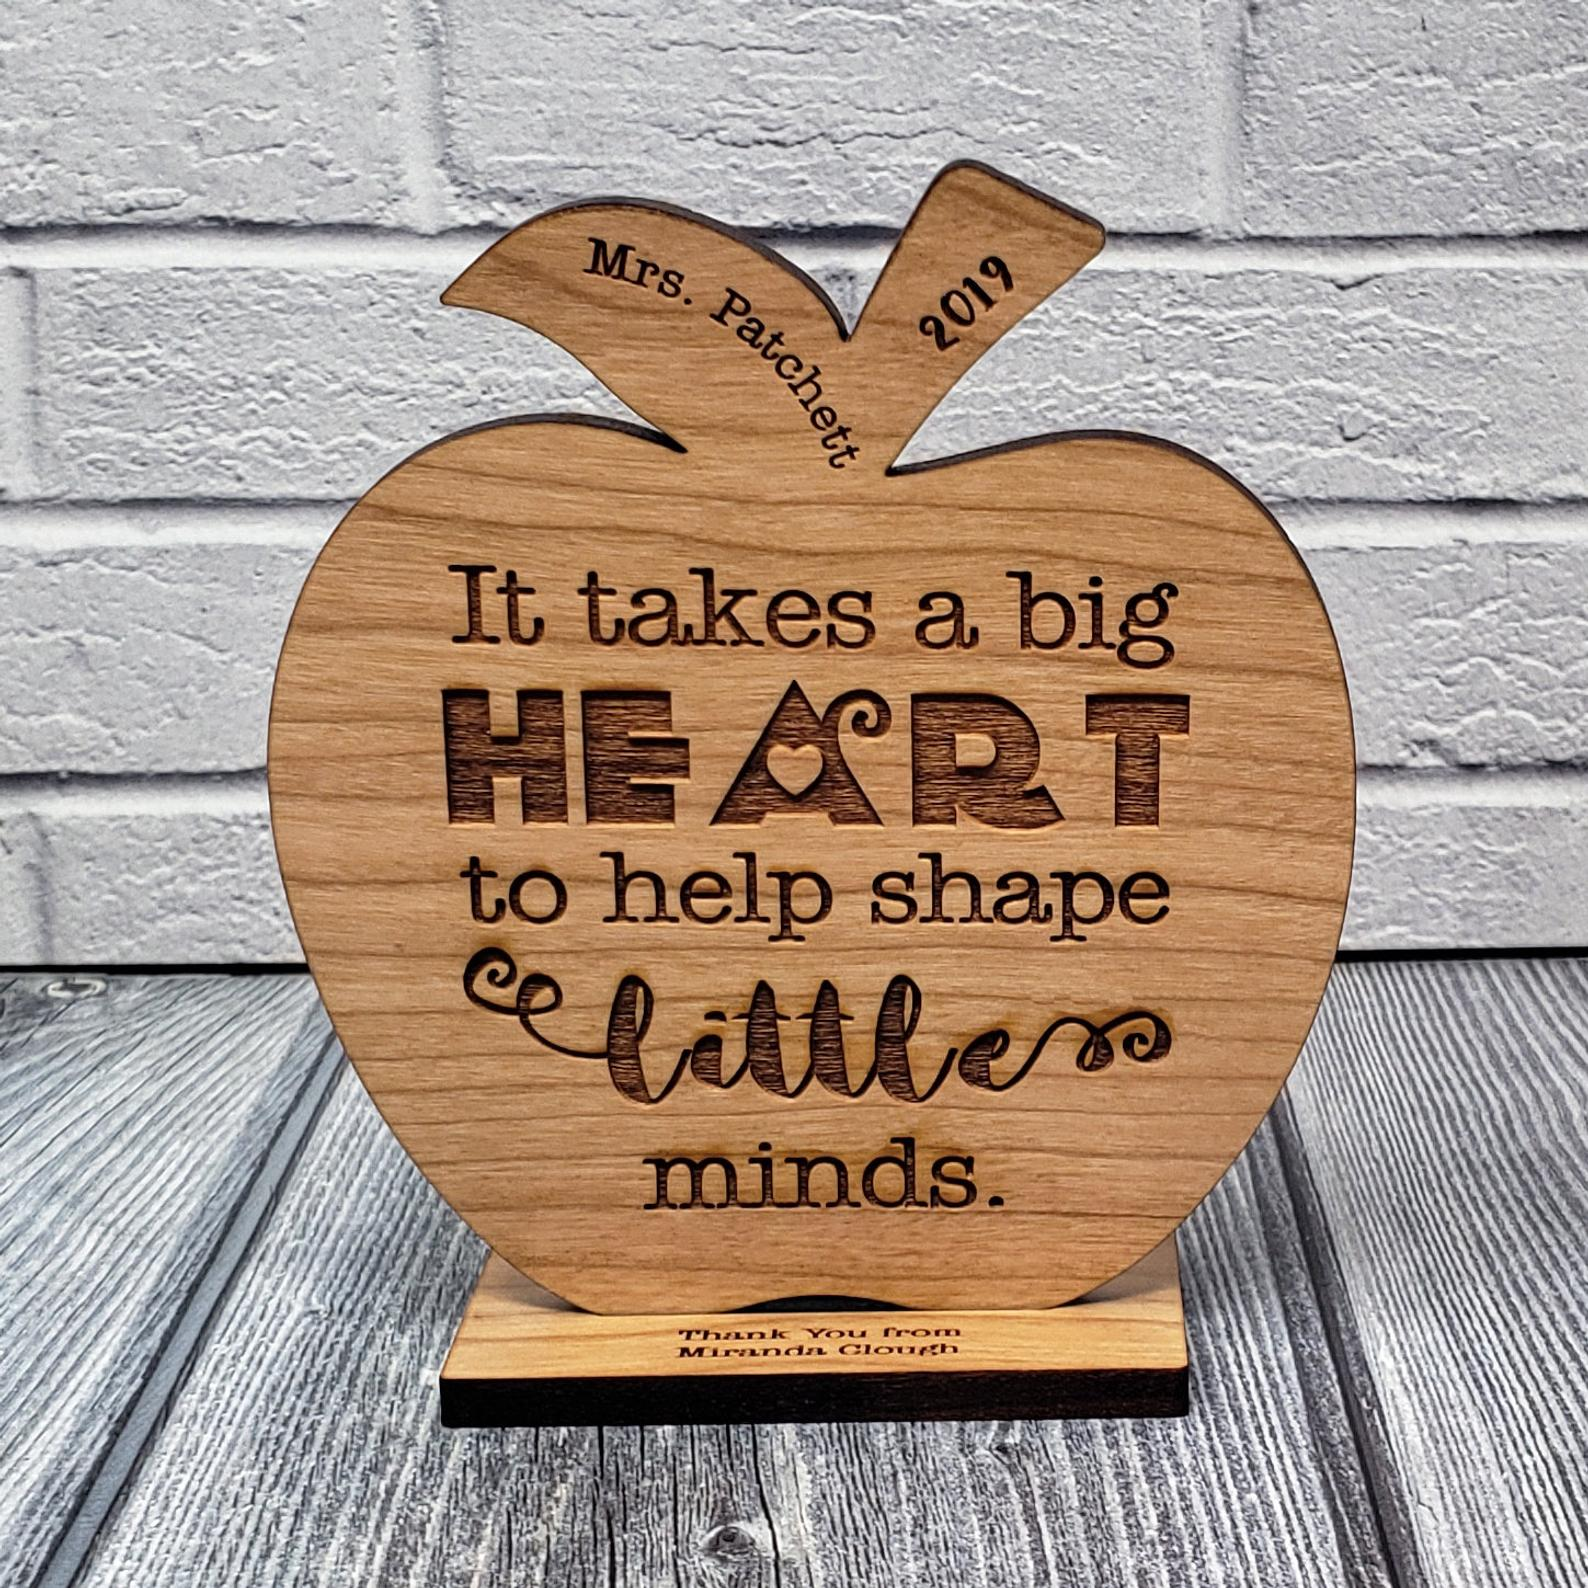 Custom Teacher Appreciation Gift Wood Engraved Apple Desk Display Award | Thank You | Big Heart to h